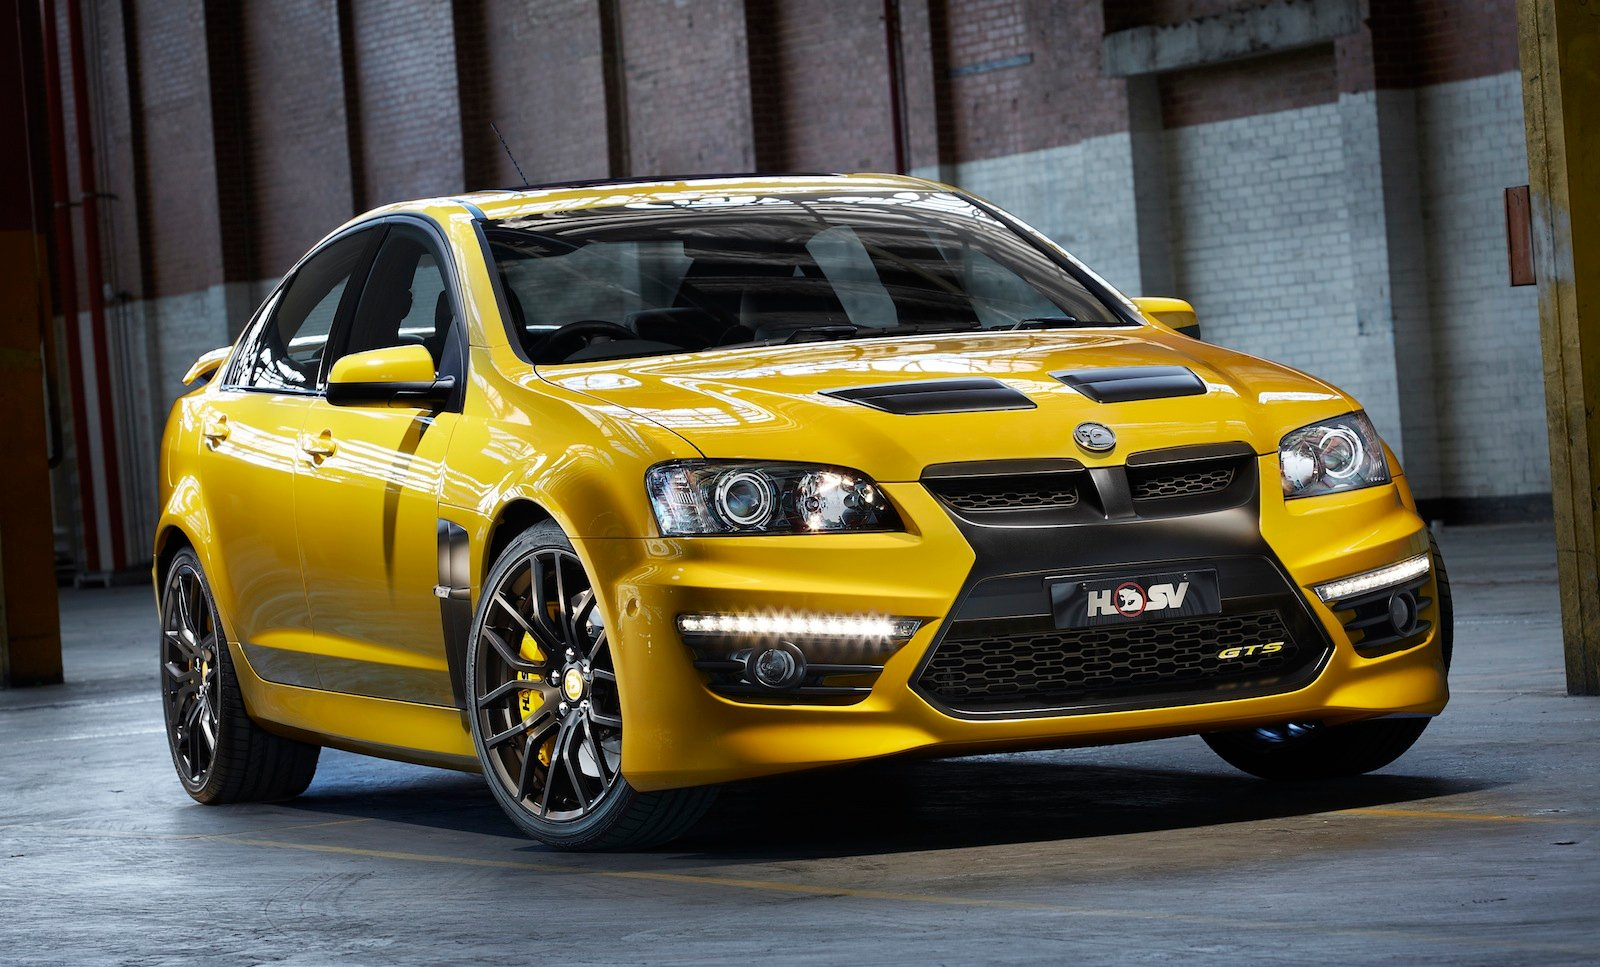 Mercedes Luxury Cars >> HSV GTS 25th anniversary limited edition unleashed - photos | CarAdvice